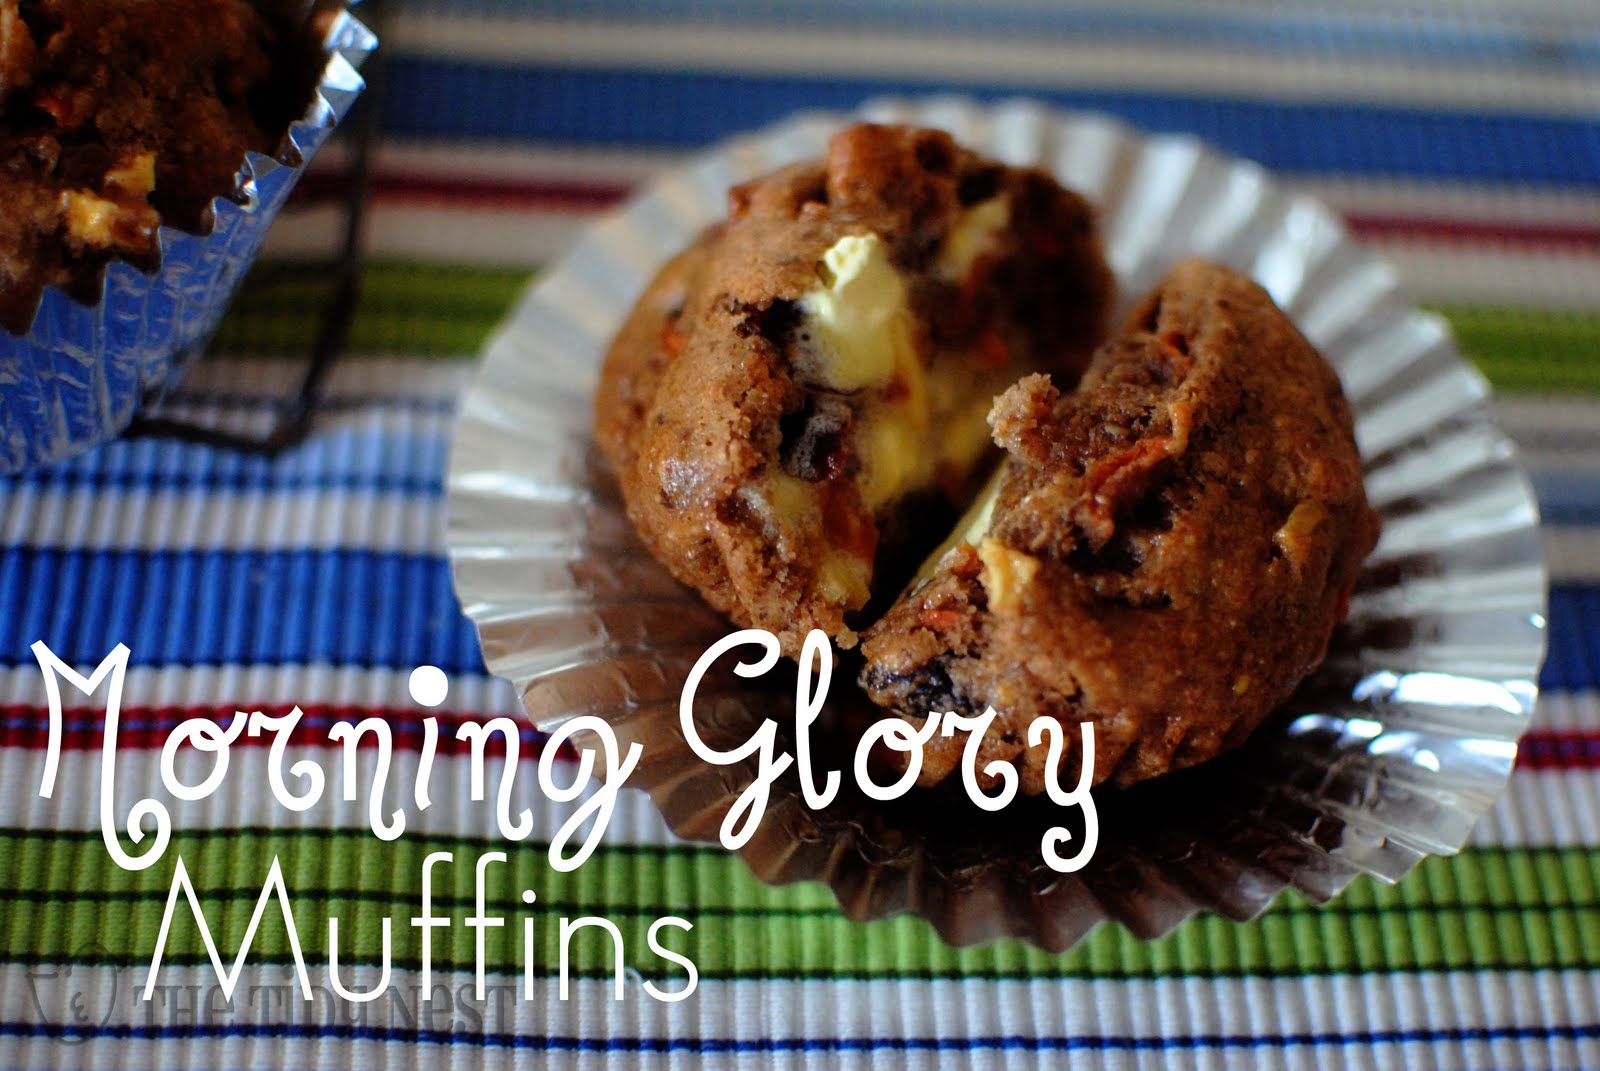 The Tidy Nest: Morning Glory Muffins